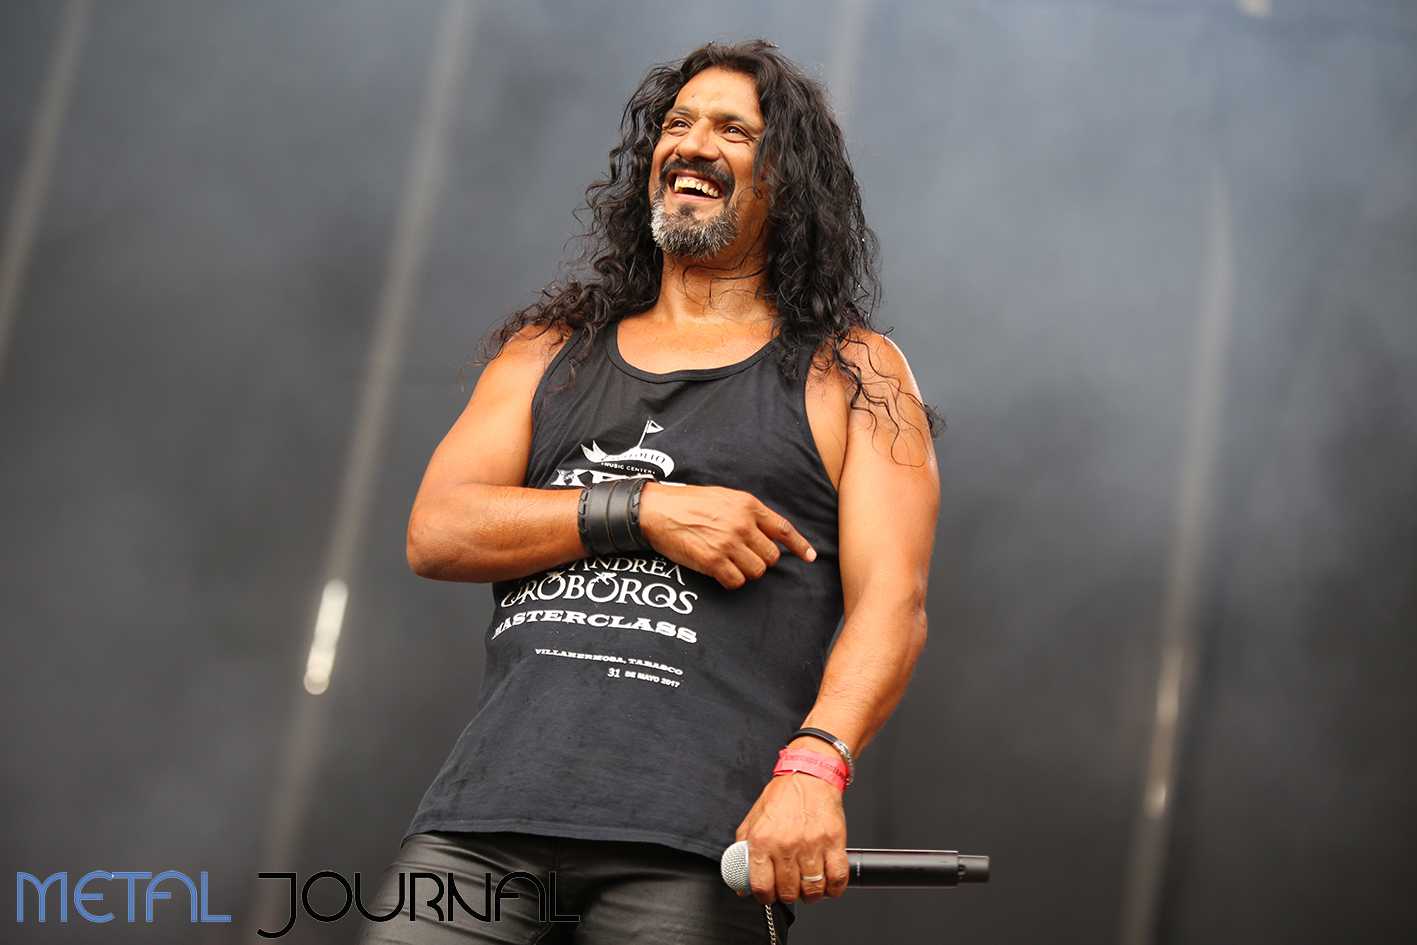 jose andrea uroboros - leyendas del rock 2019 metal journal pic 3